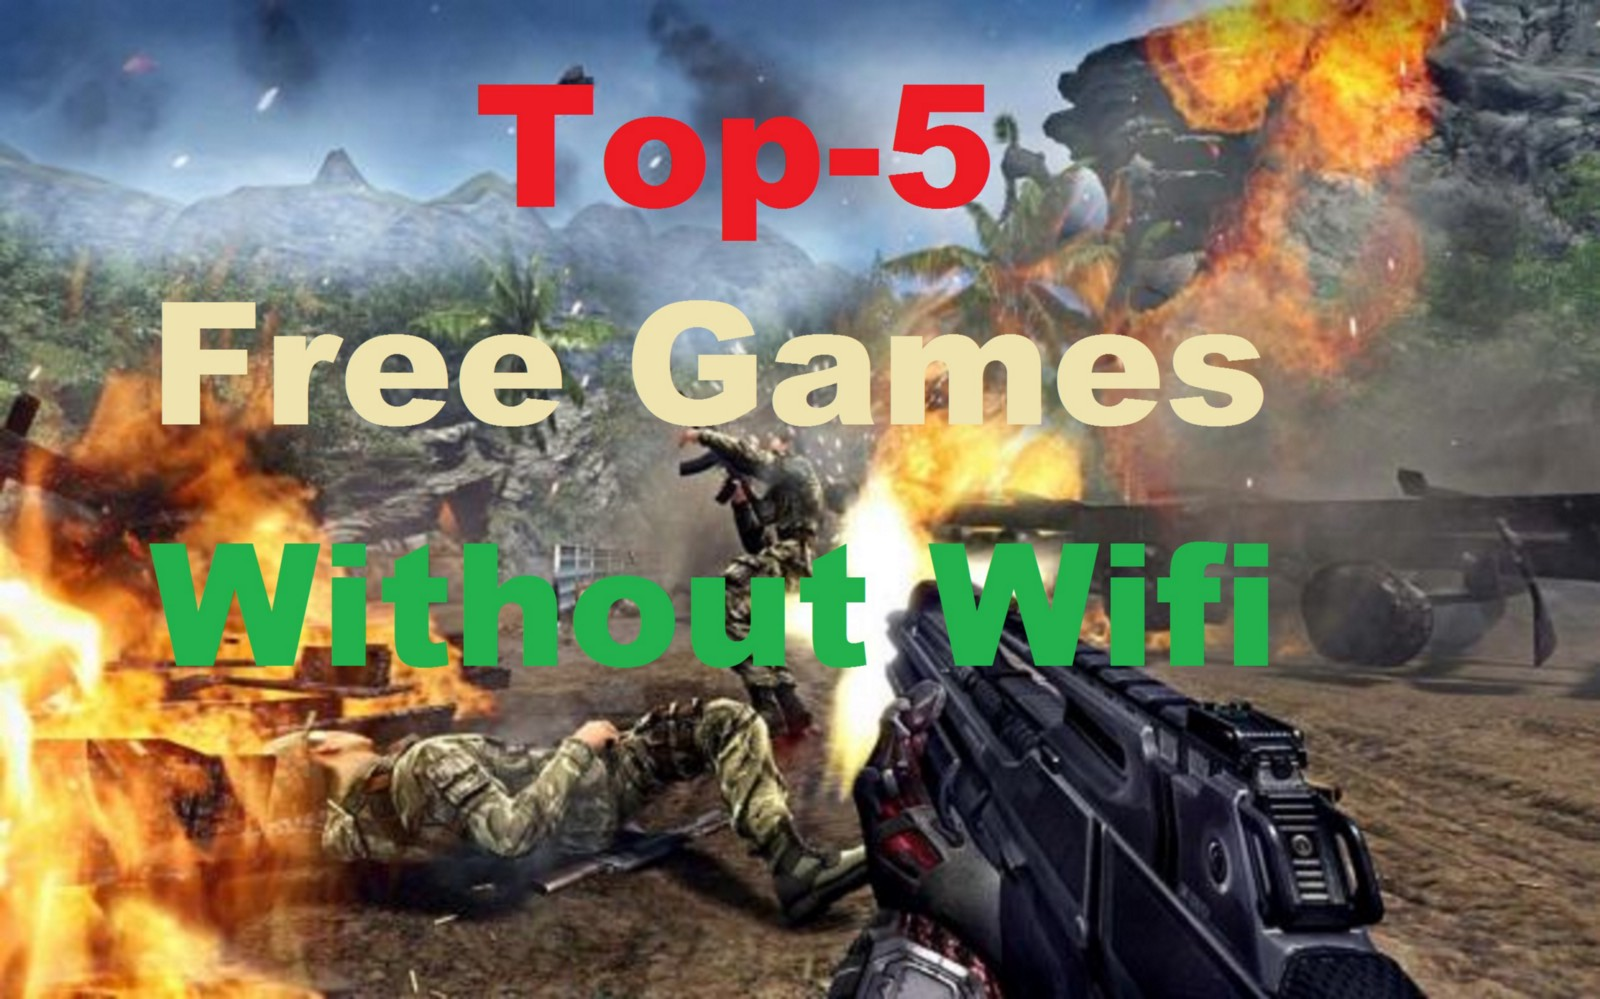 Best Offline Android Games 2020.Top 10 No Wifi Free Games For Android Phone 2020 Best No